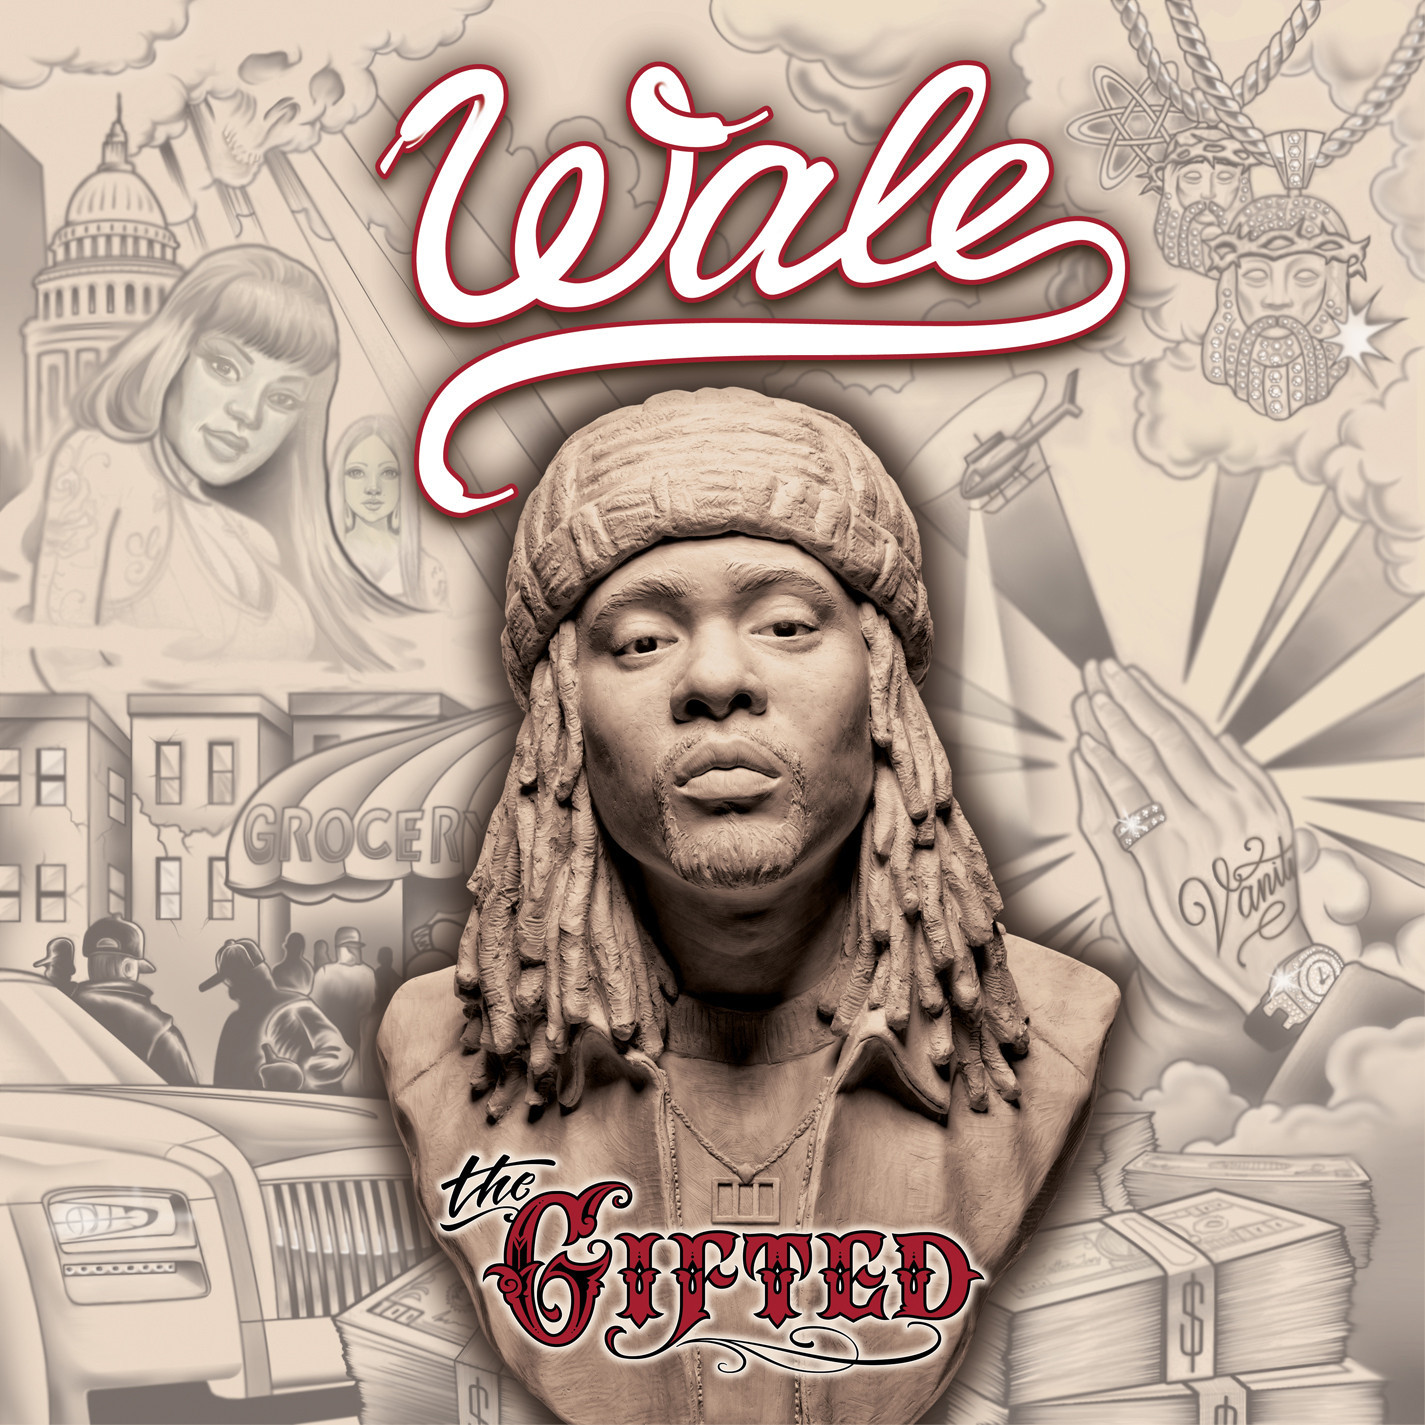 Baltimore album reviews [Pictures] - Wale --